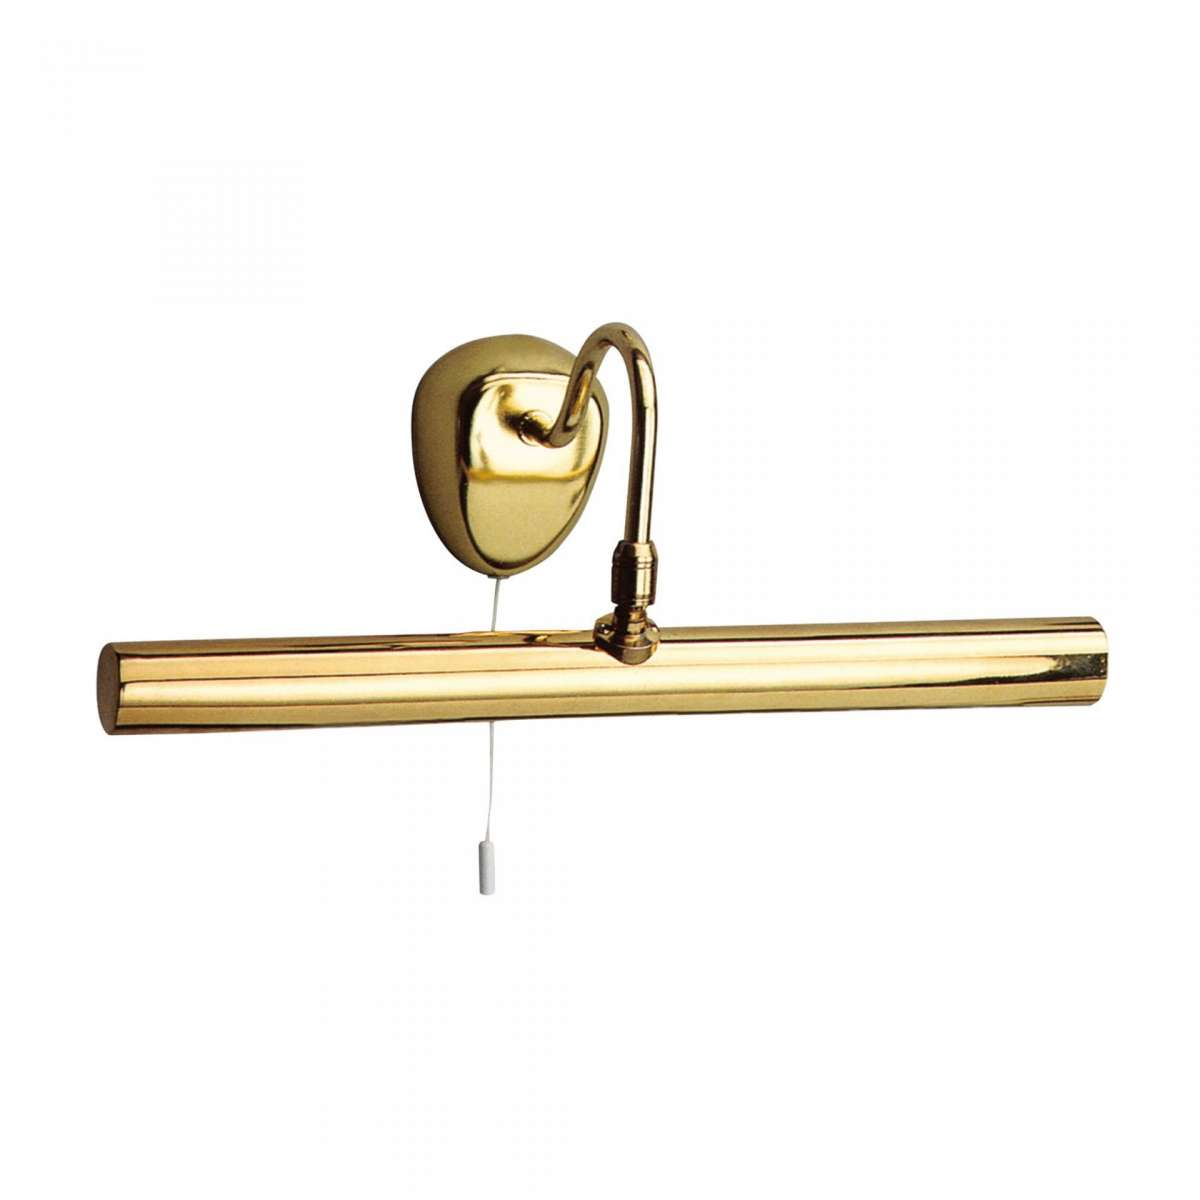 2 Light Picture Light Polished Brass with Adjustable Knuckle Joint